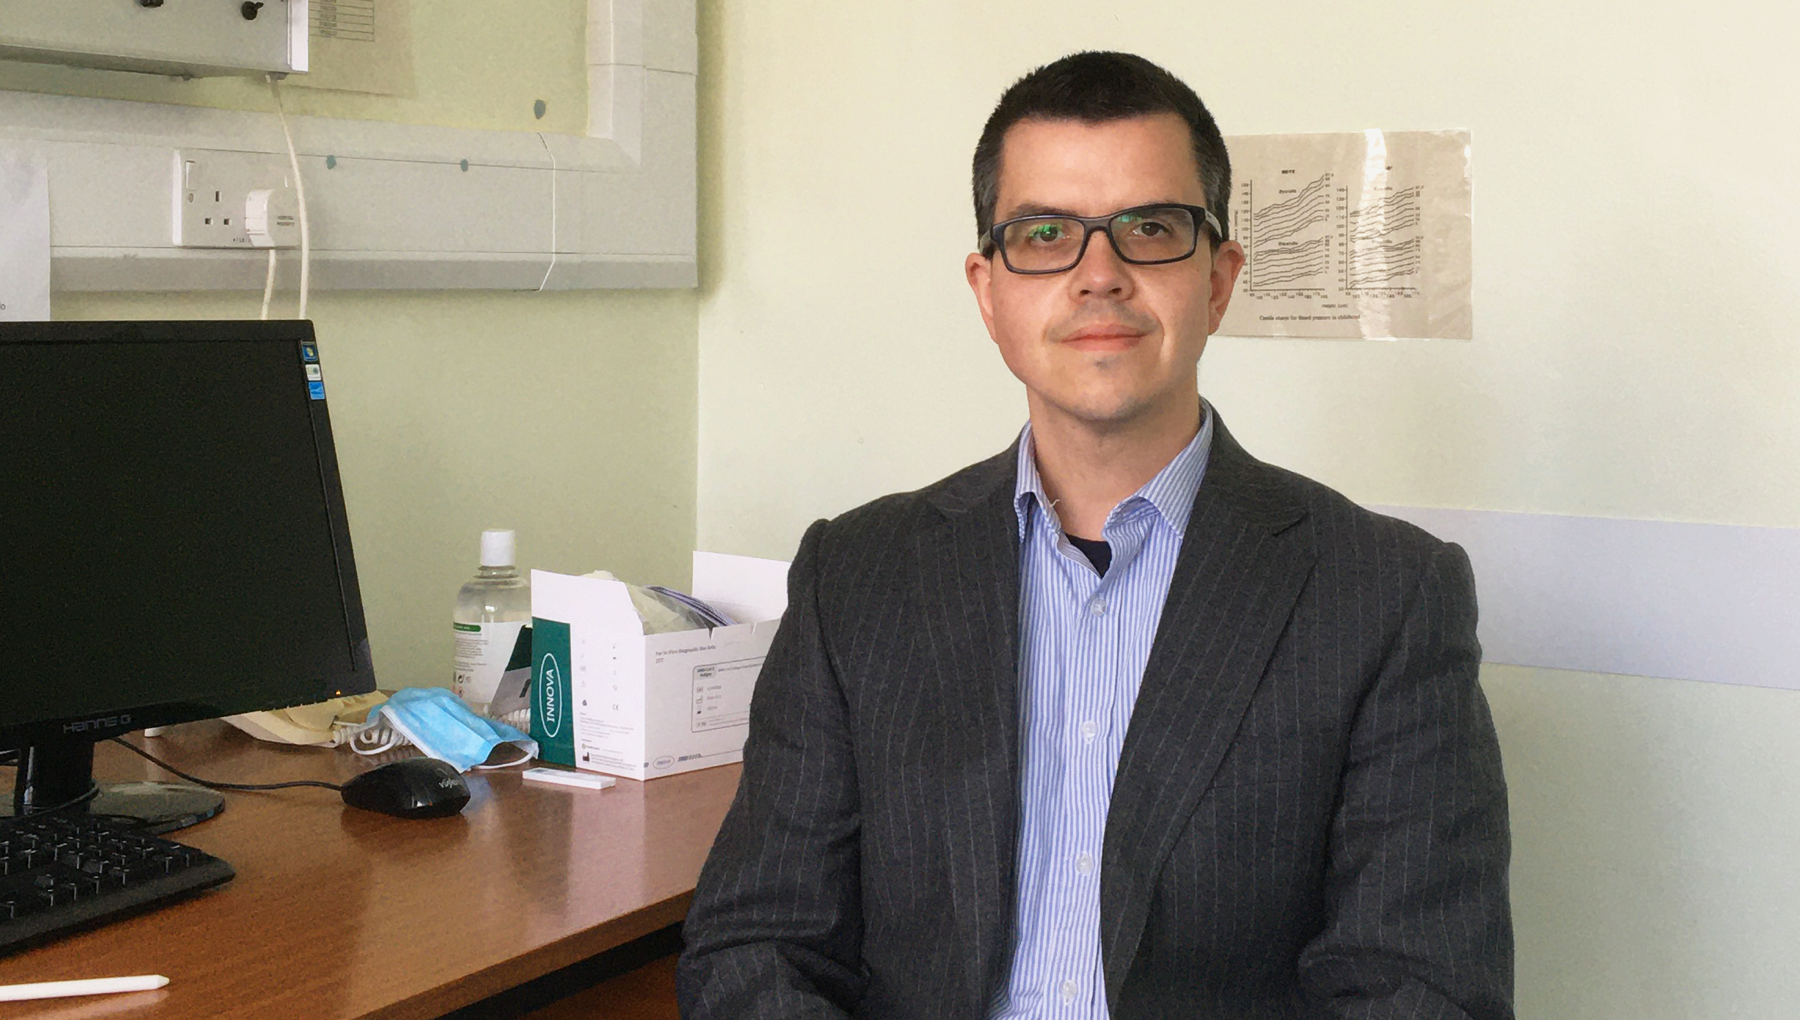 Dr. Alisdair Mcneill poses for a photo in his pediatric office at Sheffield Children's Hospital.